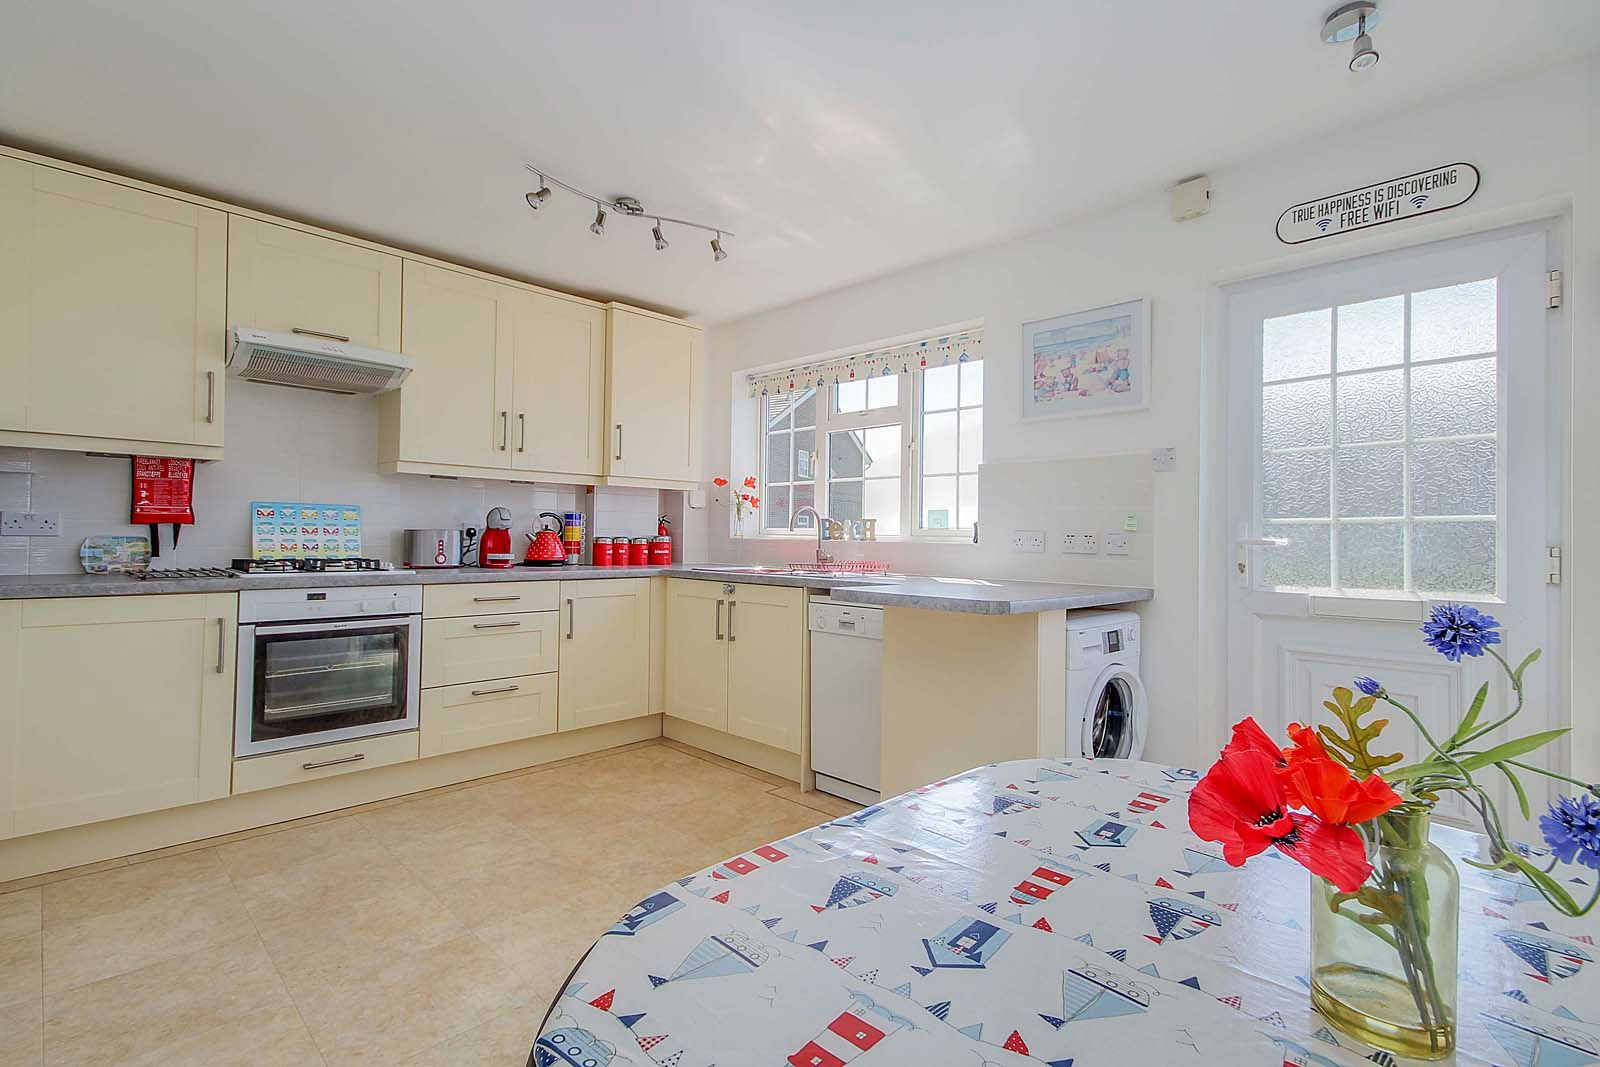 2 bed  for sale in Ferring Marine 3